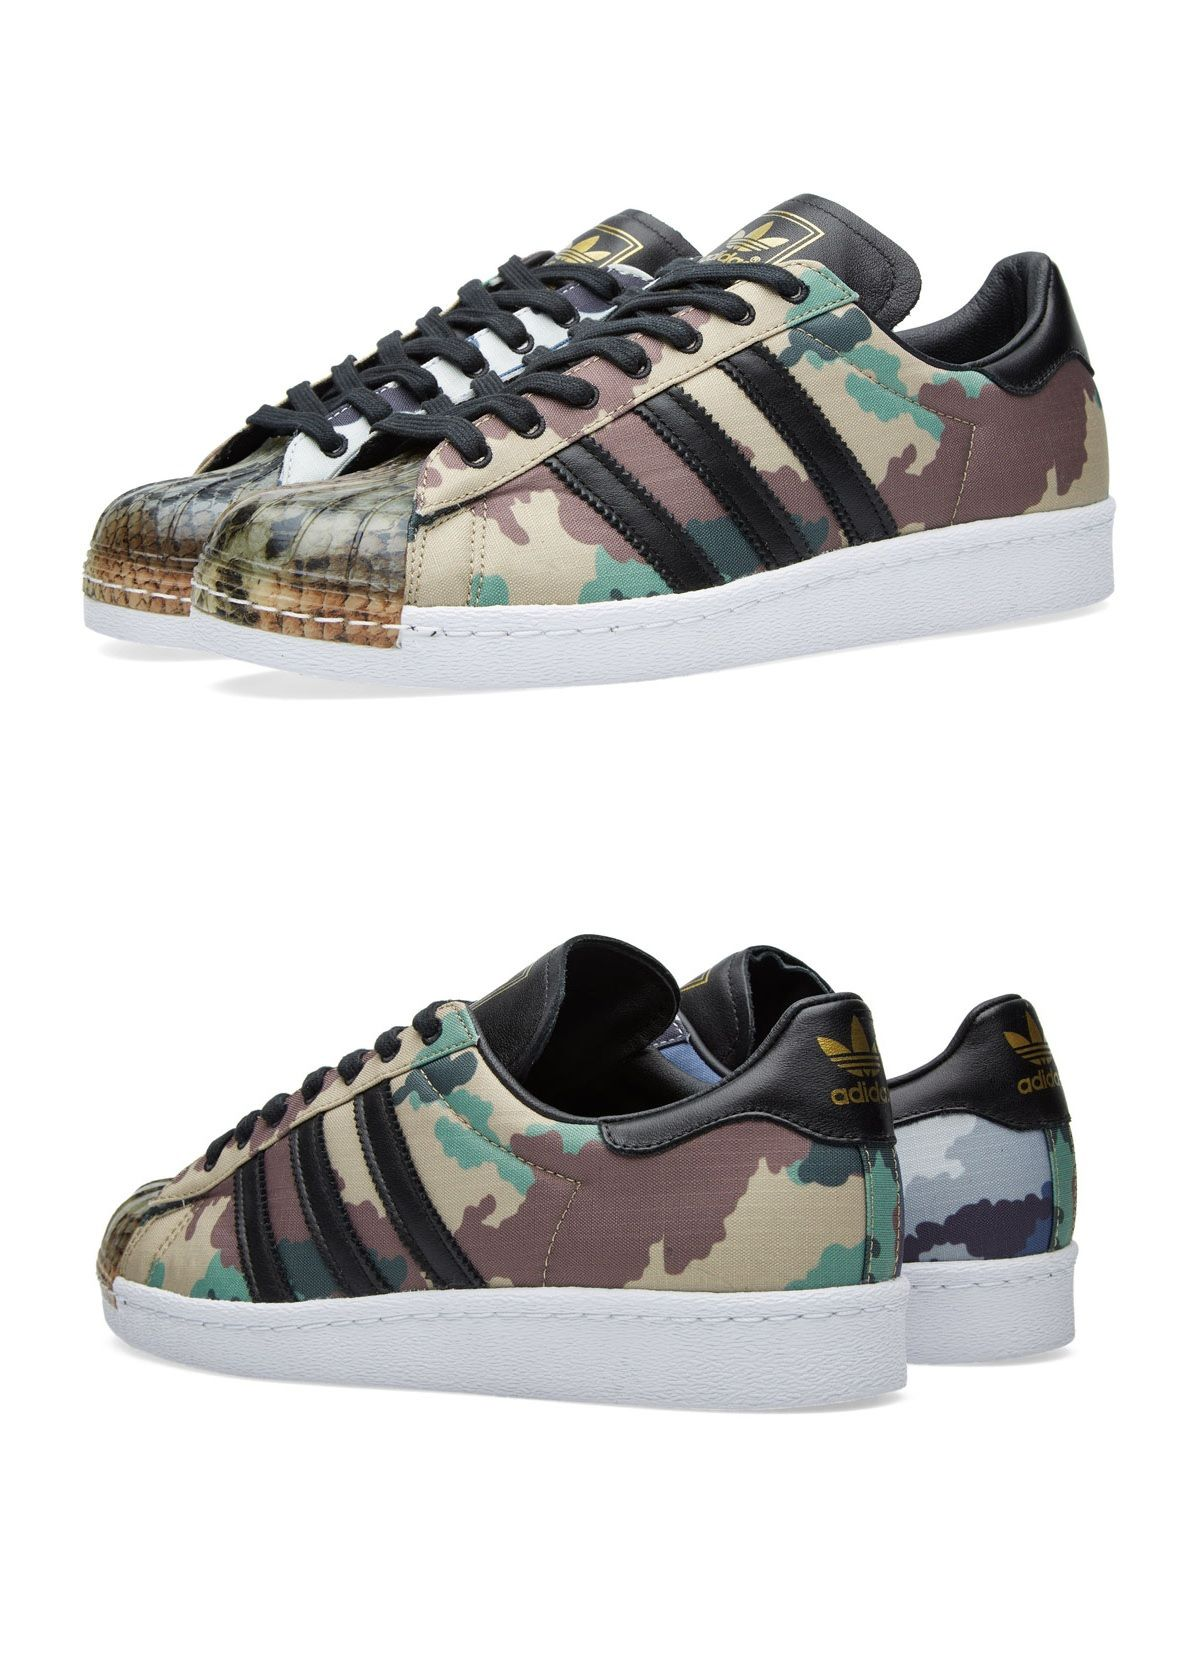 adidas superstar zapatos camuflaje